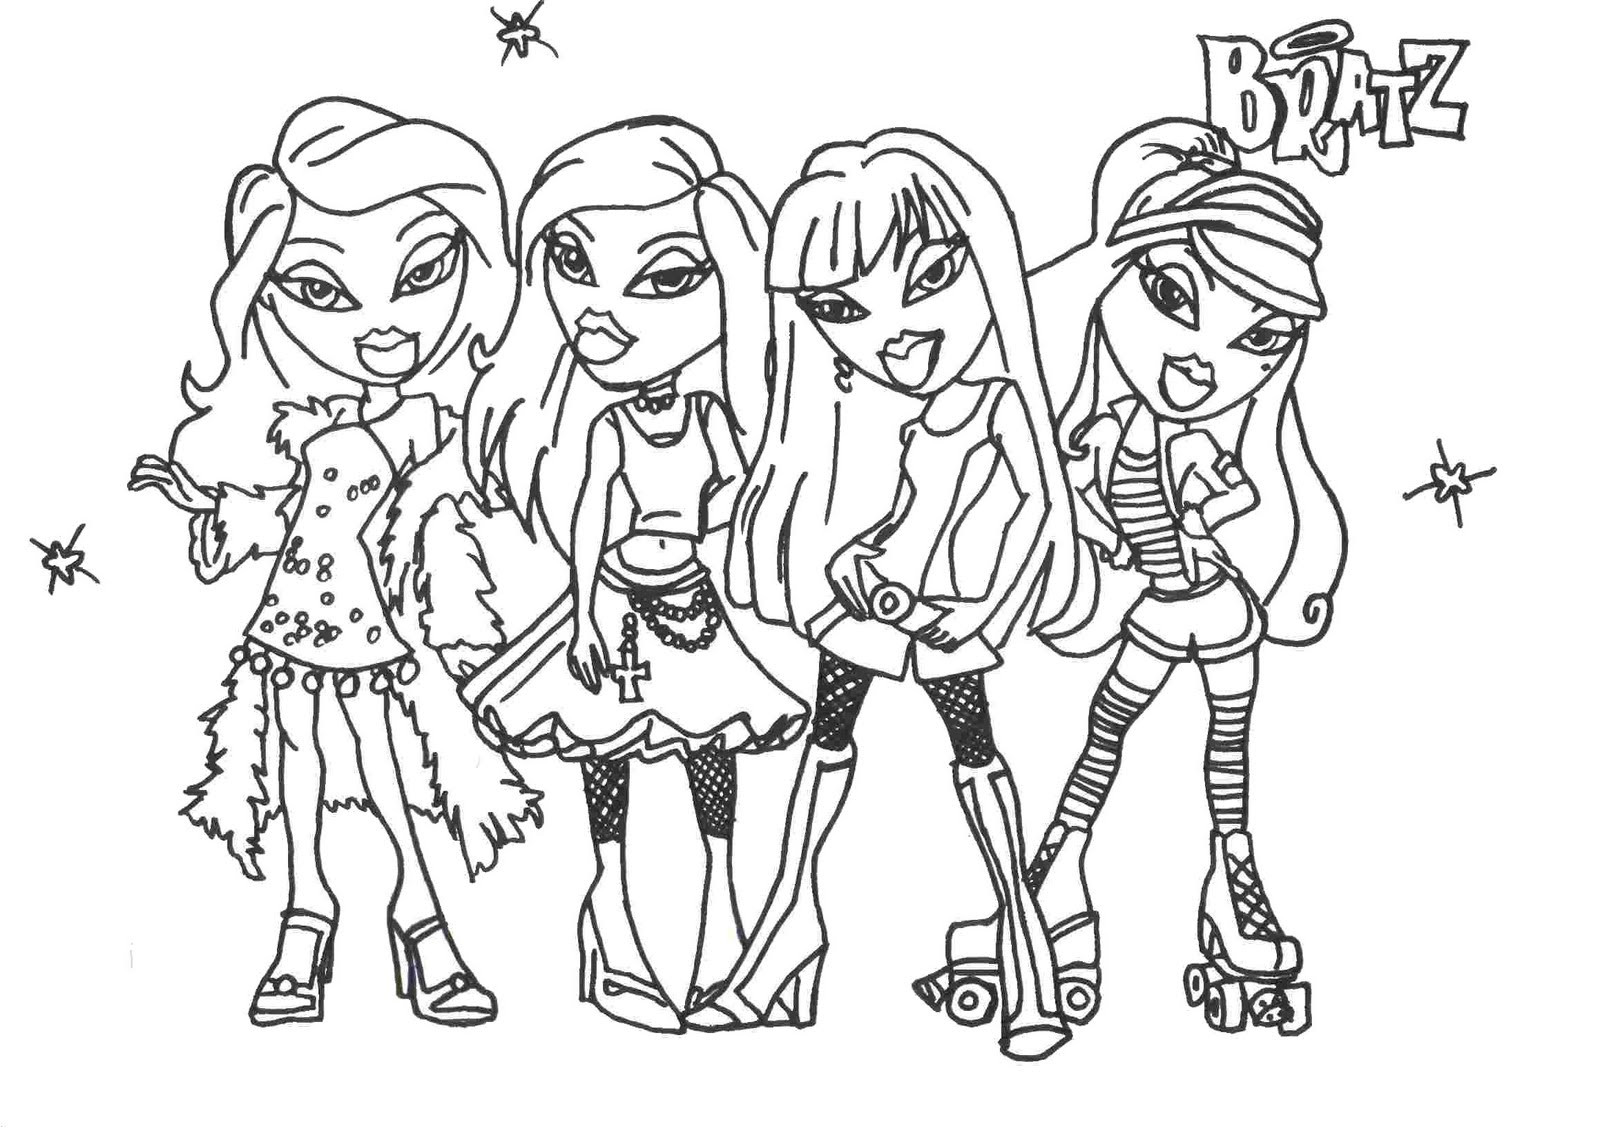 Coloring Pages For Girls That You Can Print  Free Coloring Pages for Girls Bestofcoloring